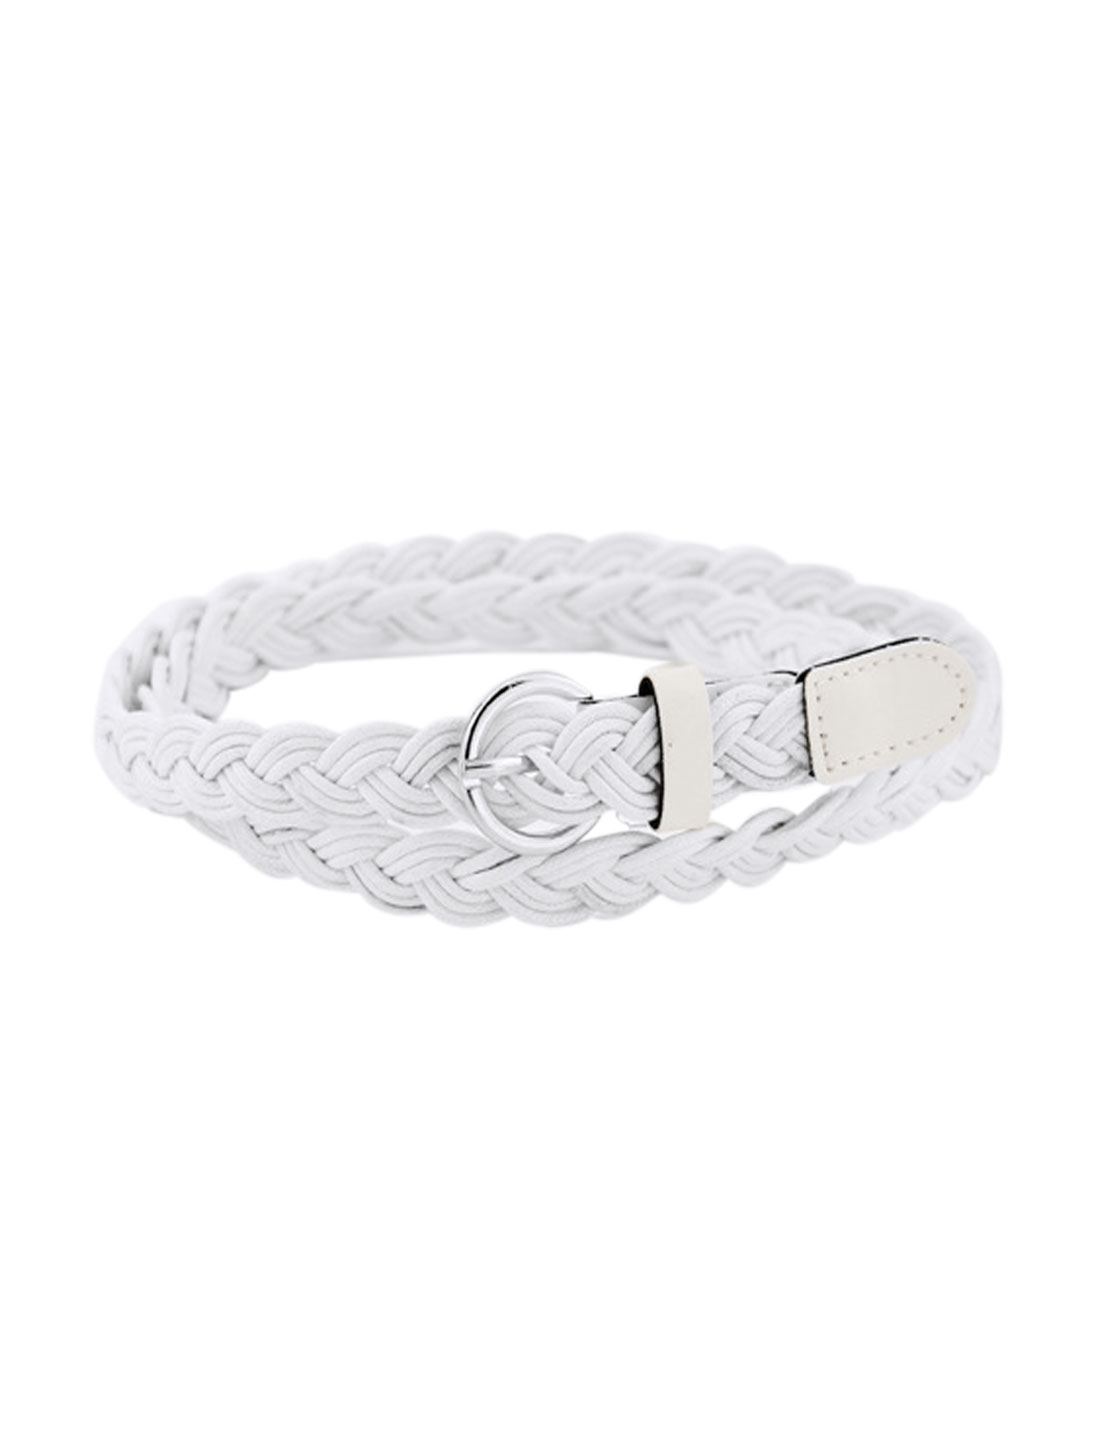 Women Adjustable Single Pin Buckle Skinny Braided Belt White